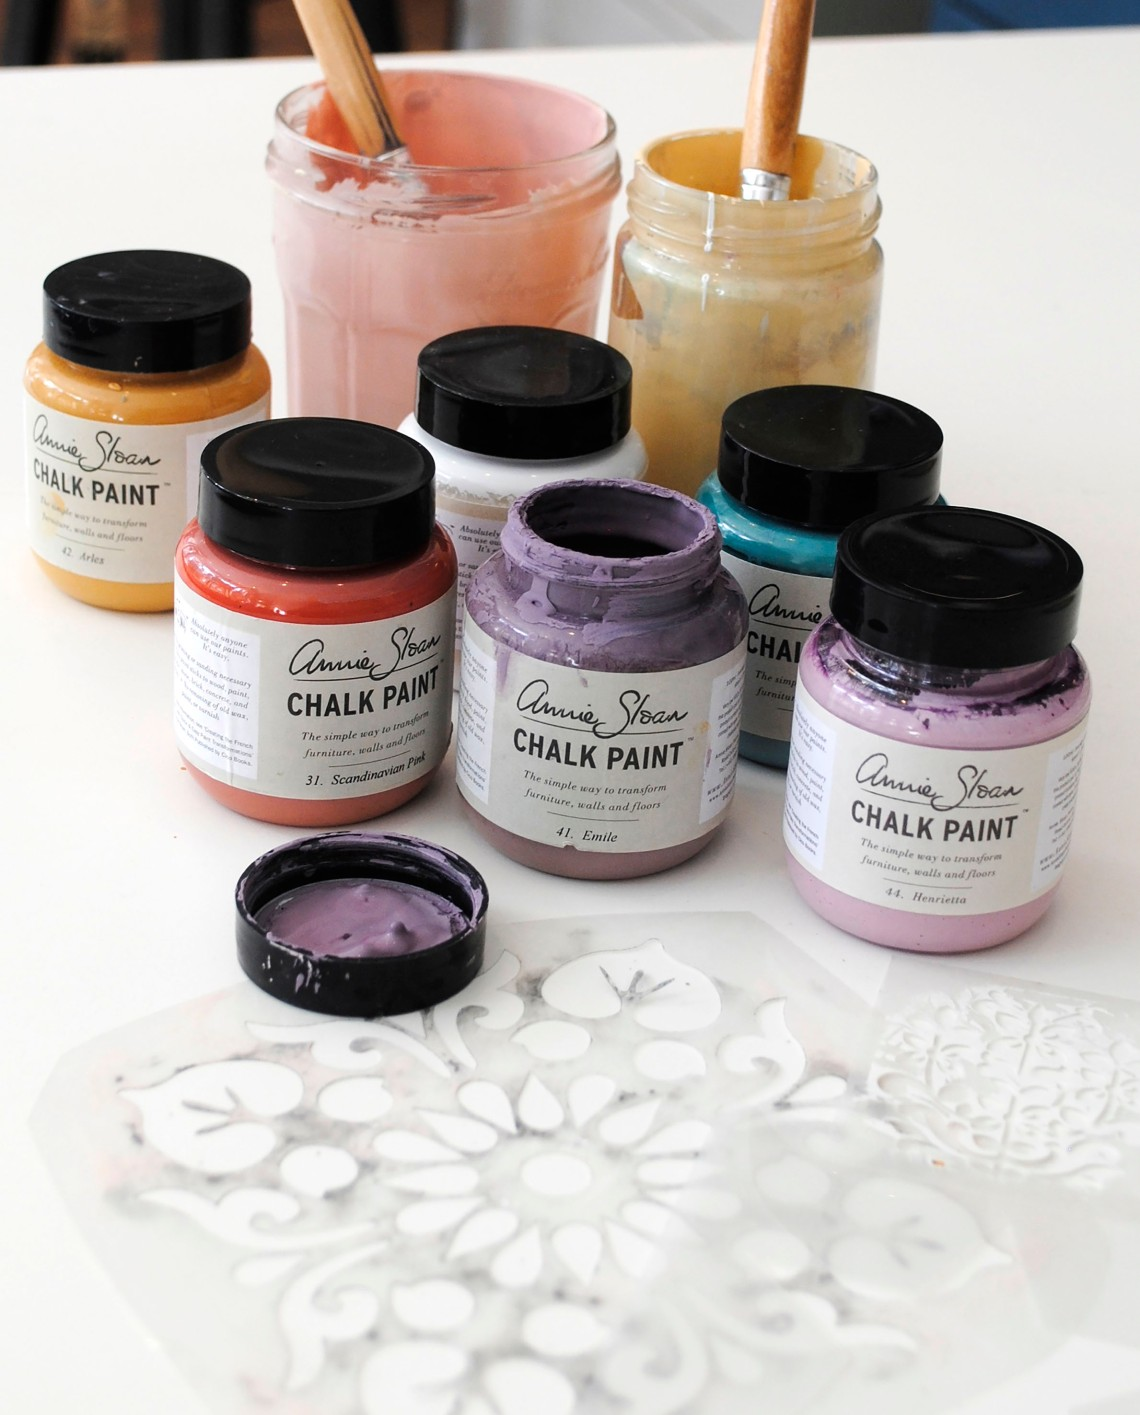 Paint and Stencils